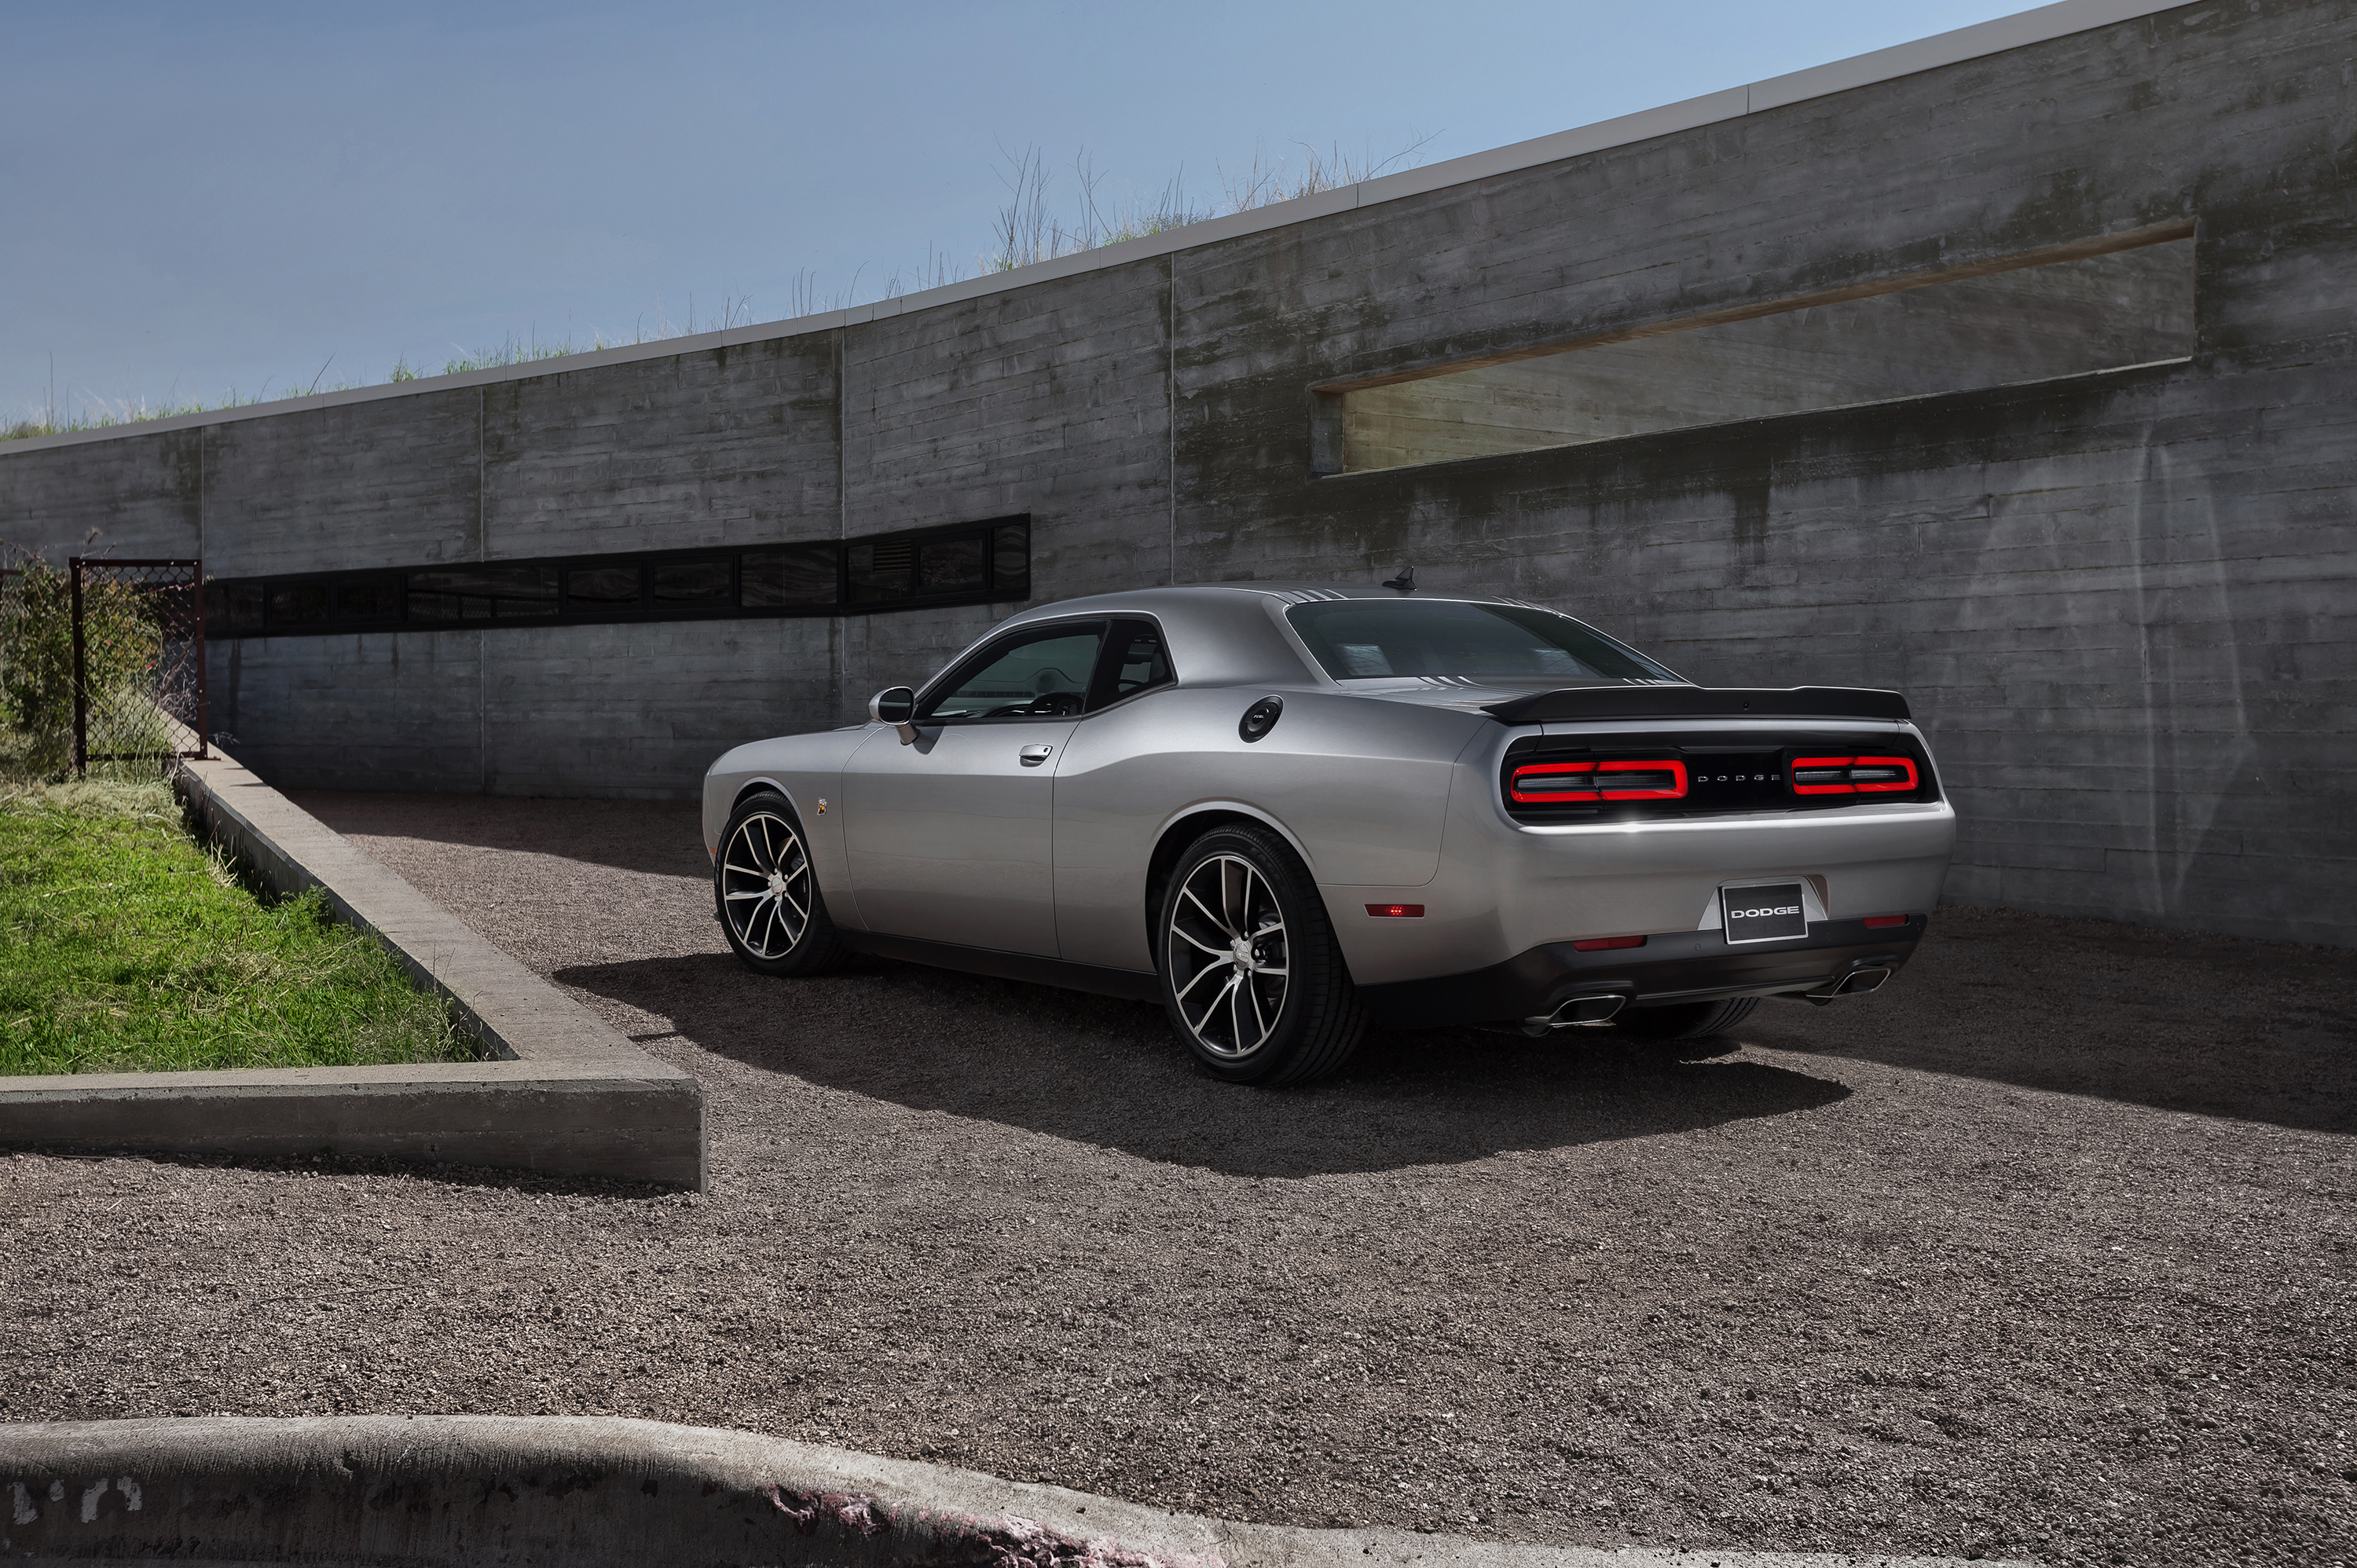 2015 Dodge Challenger Makes Debut In New York Image 244588